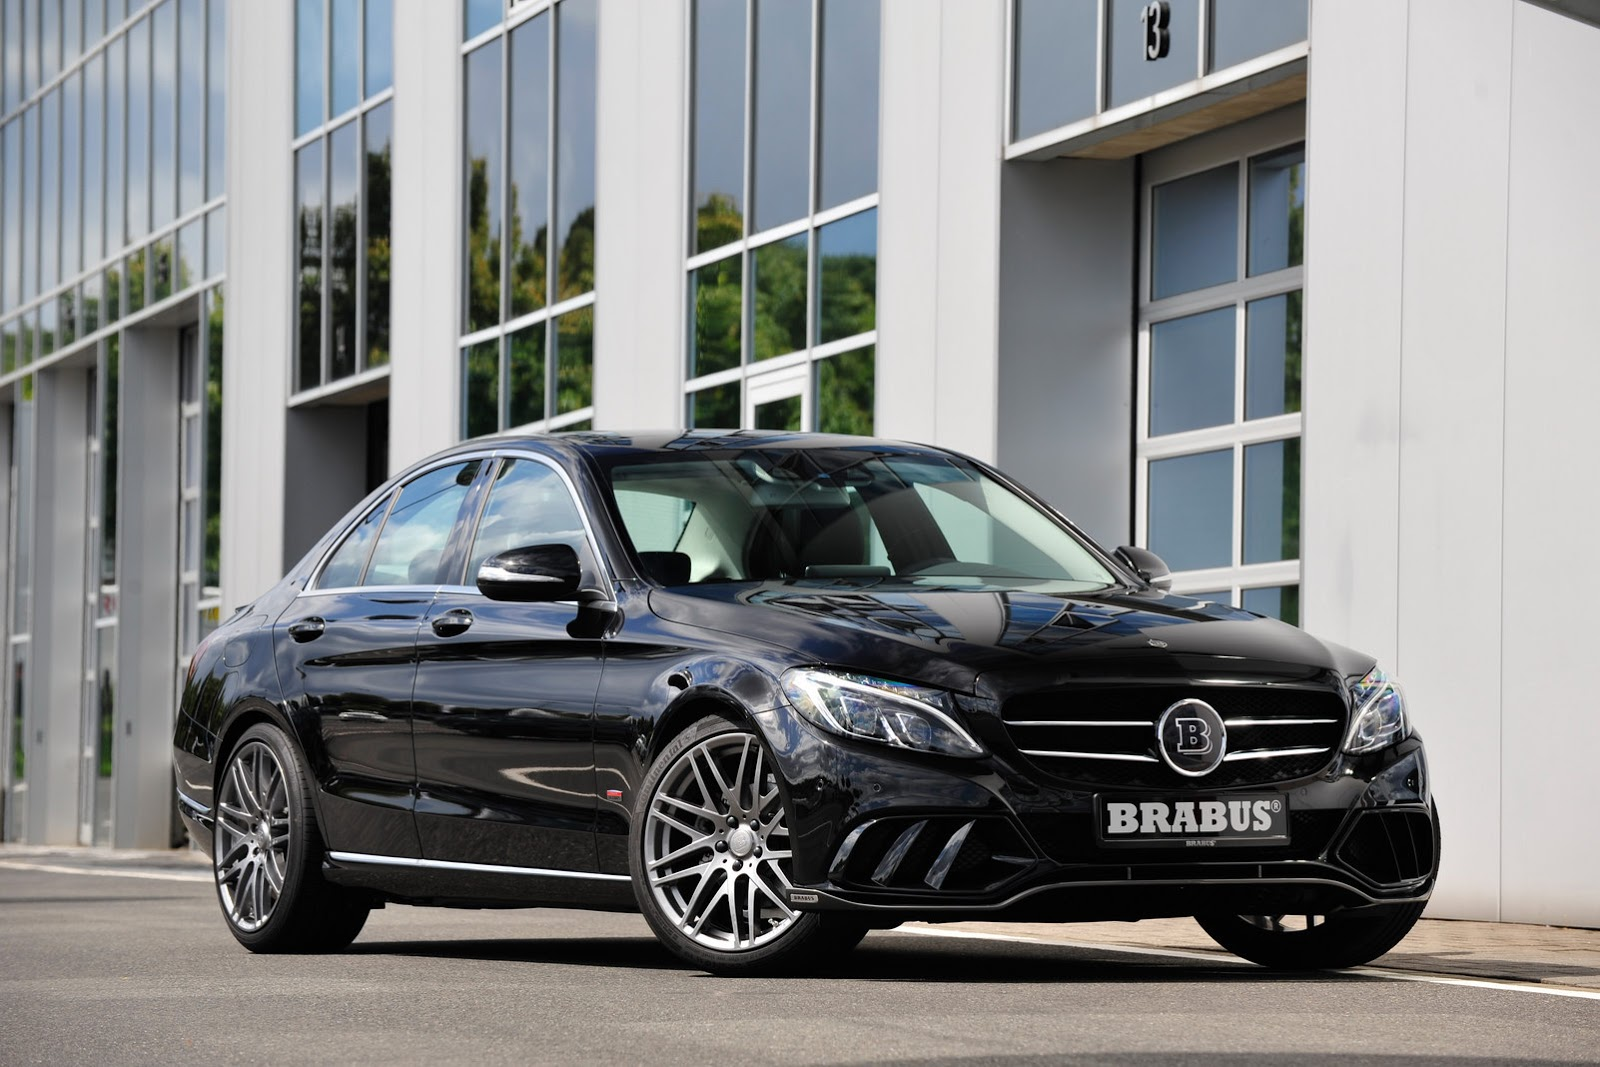 brabus tunes into new 2015 mercedes benz c class w205 41 pics carscoops. Black Bedroom Furniture Sets. Home Design Ideas